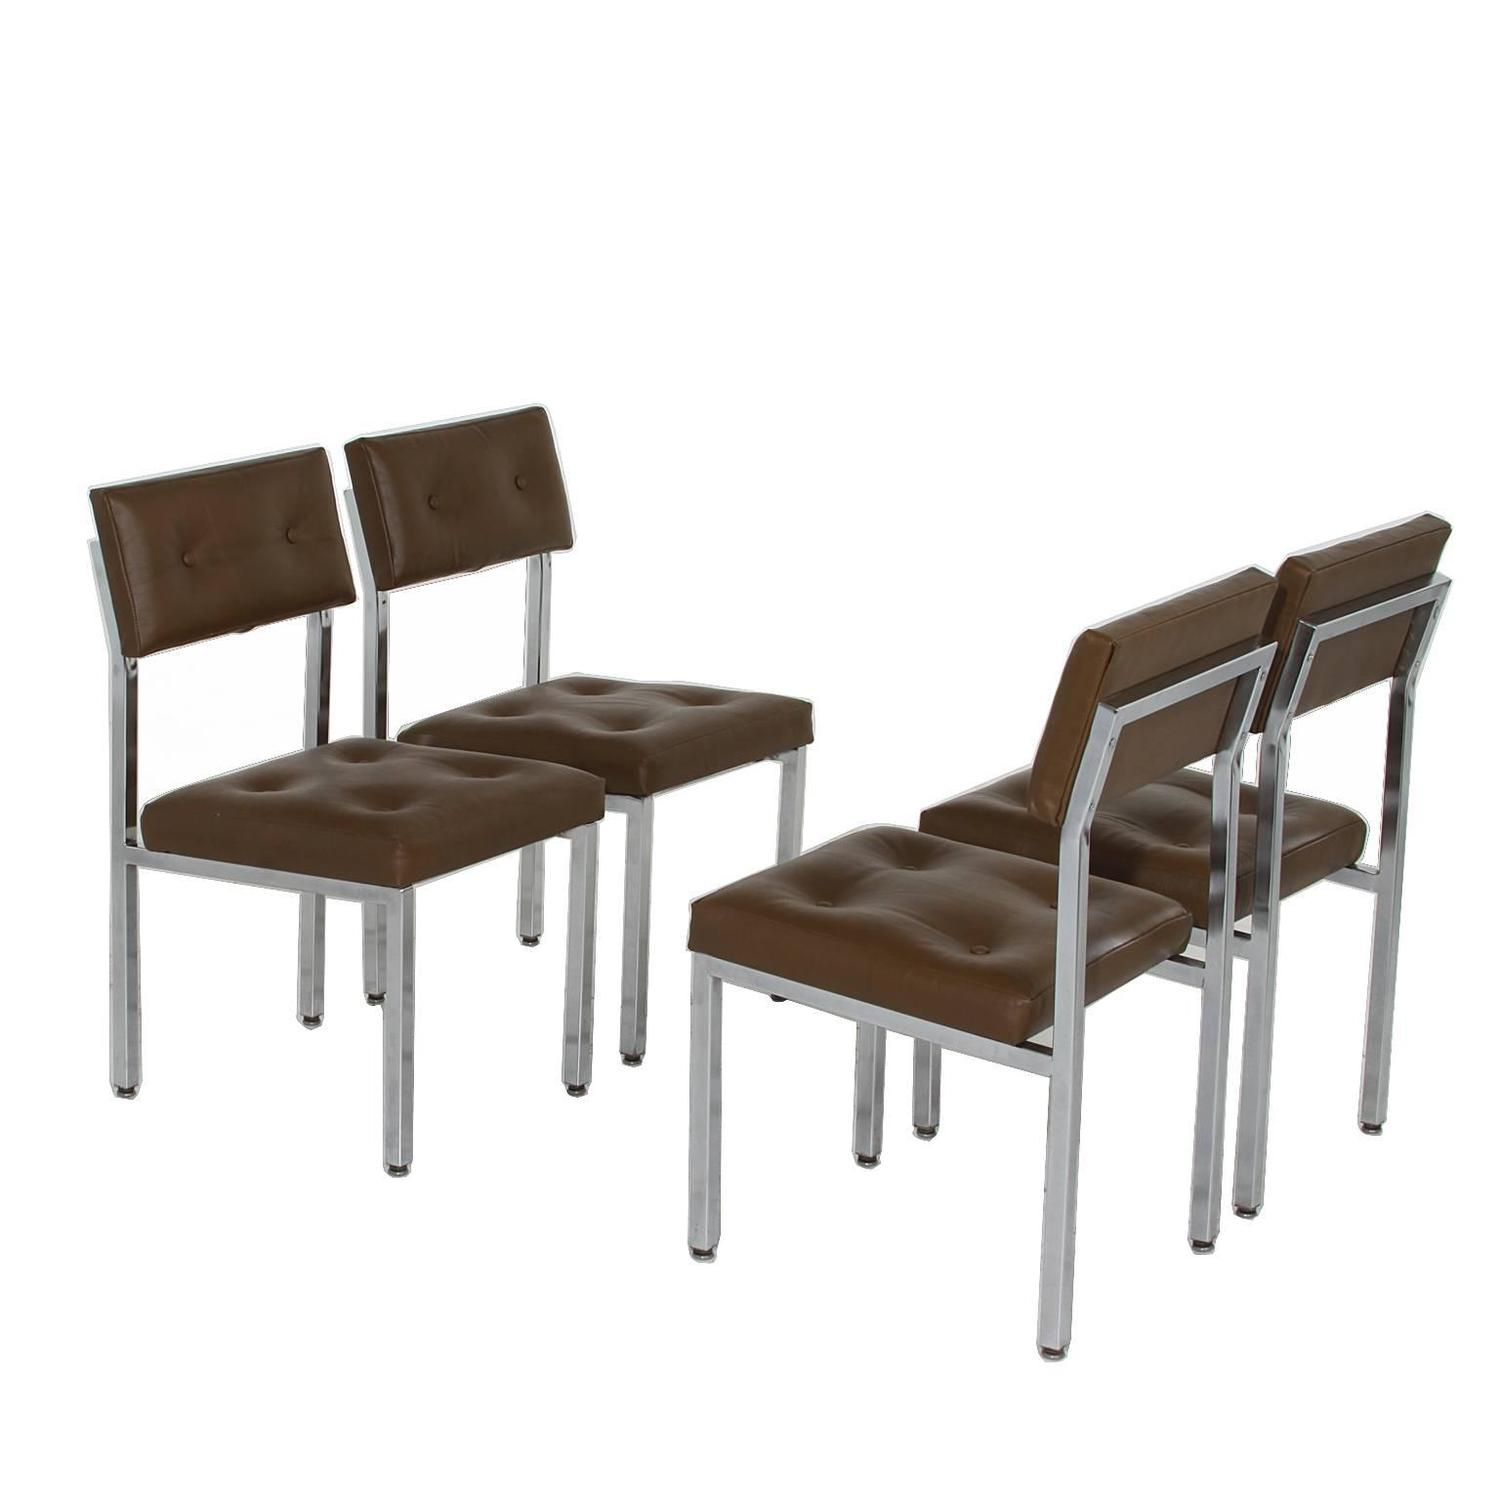 Set of olive green tufted leather and chrome dining chairs for Tufted leather dining room chairs